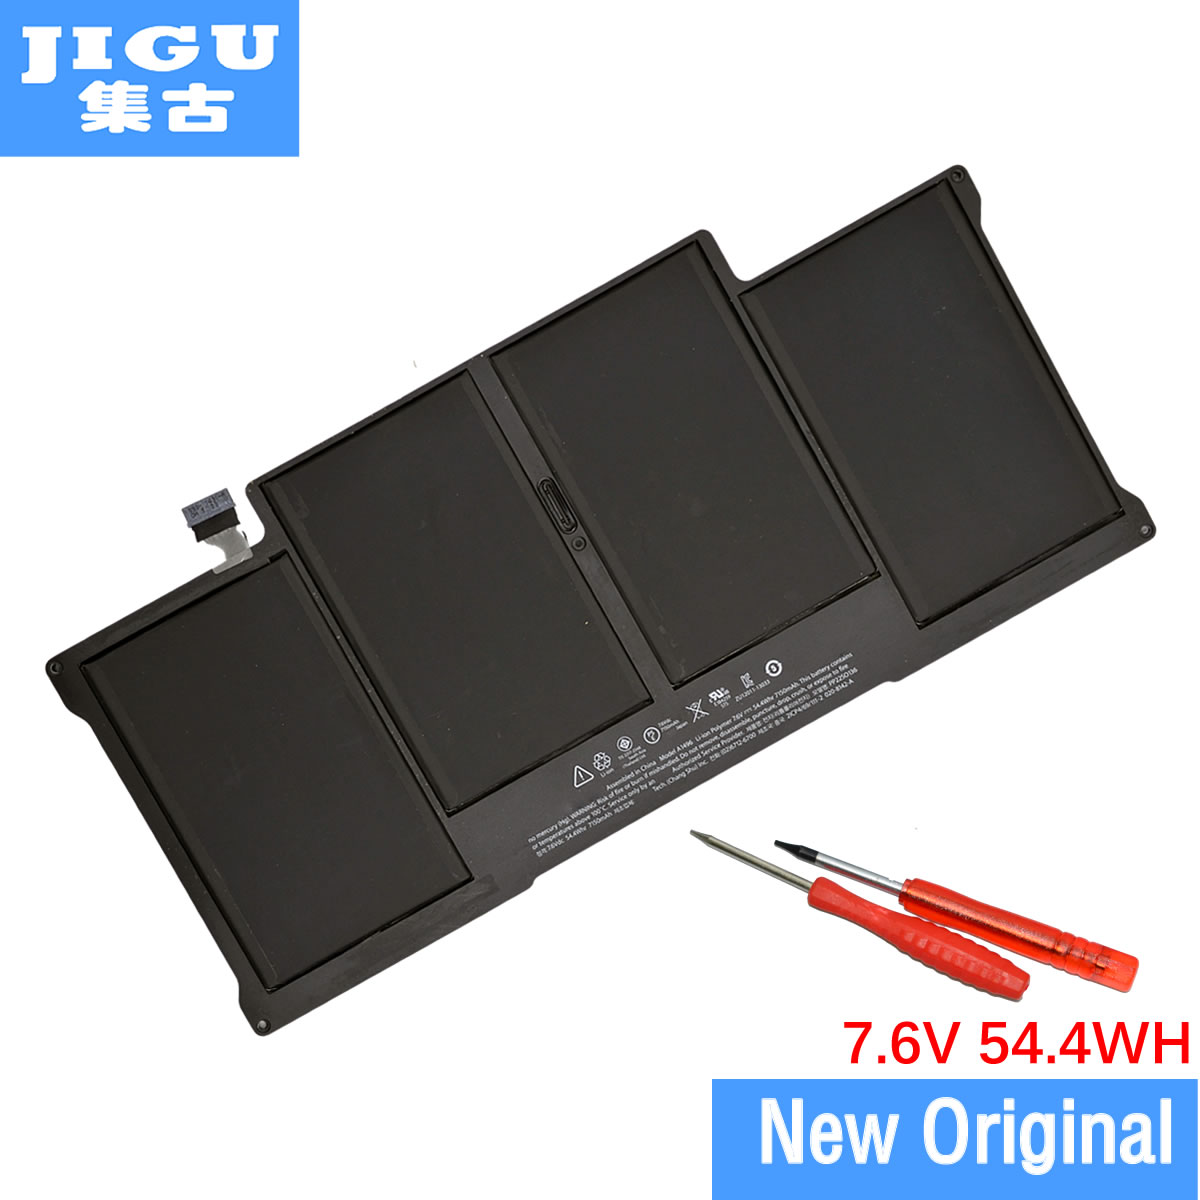 "JIGU A1496 Batería original para APPLE para MacBook Air 13 ""A1466 2013/2014 MD760LL / A MD761CH / A 7.6V 7150mAh"